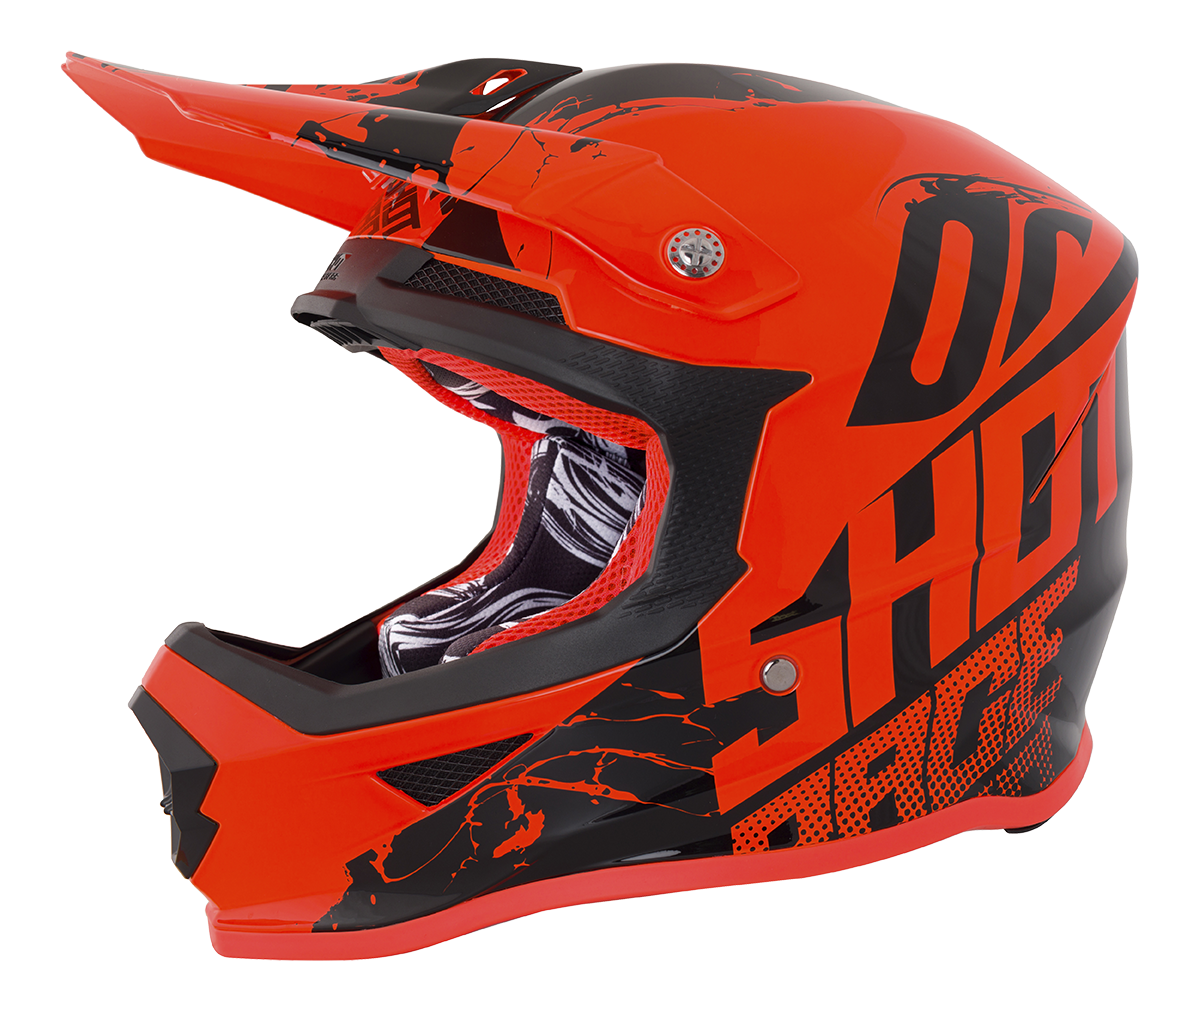 SHOT RACE GEAR 2018  HELMA III FURIOUS VENOM NEON ORANGE BRILLANT